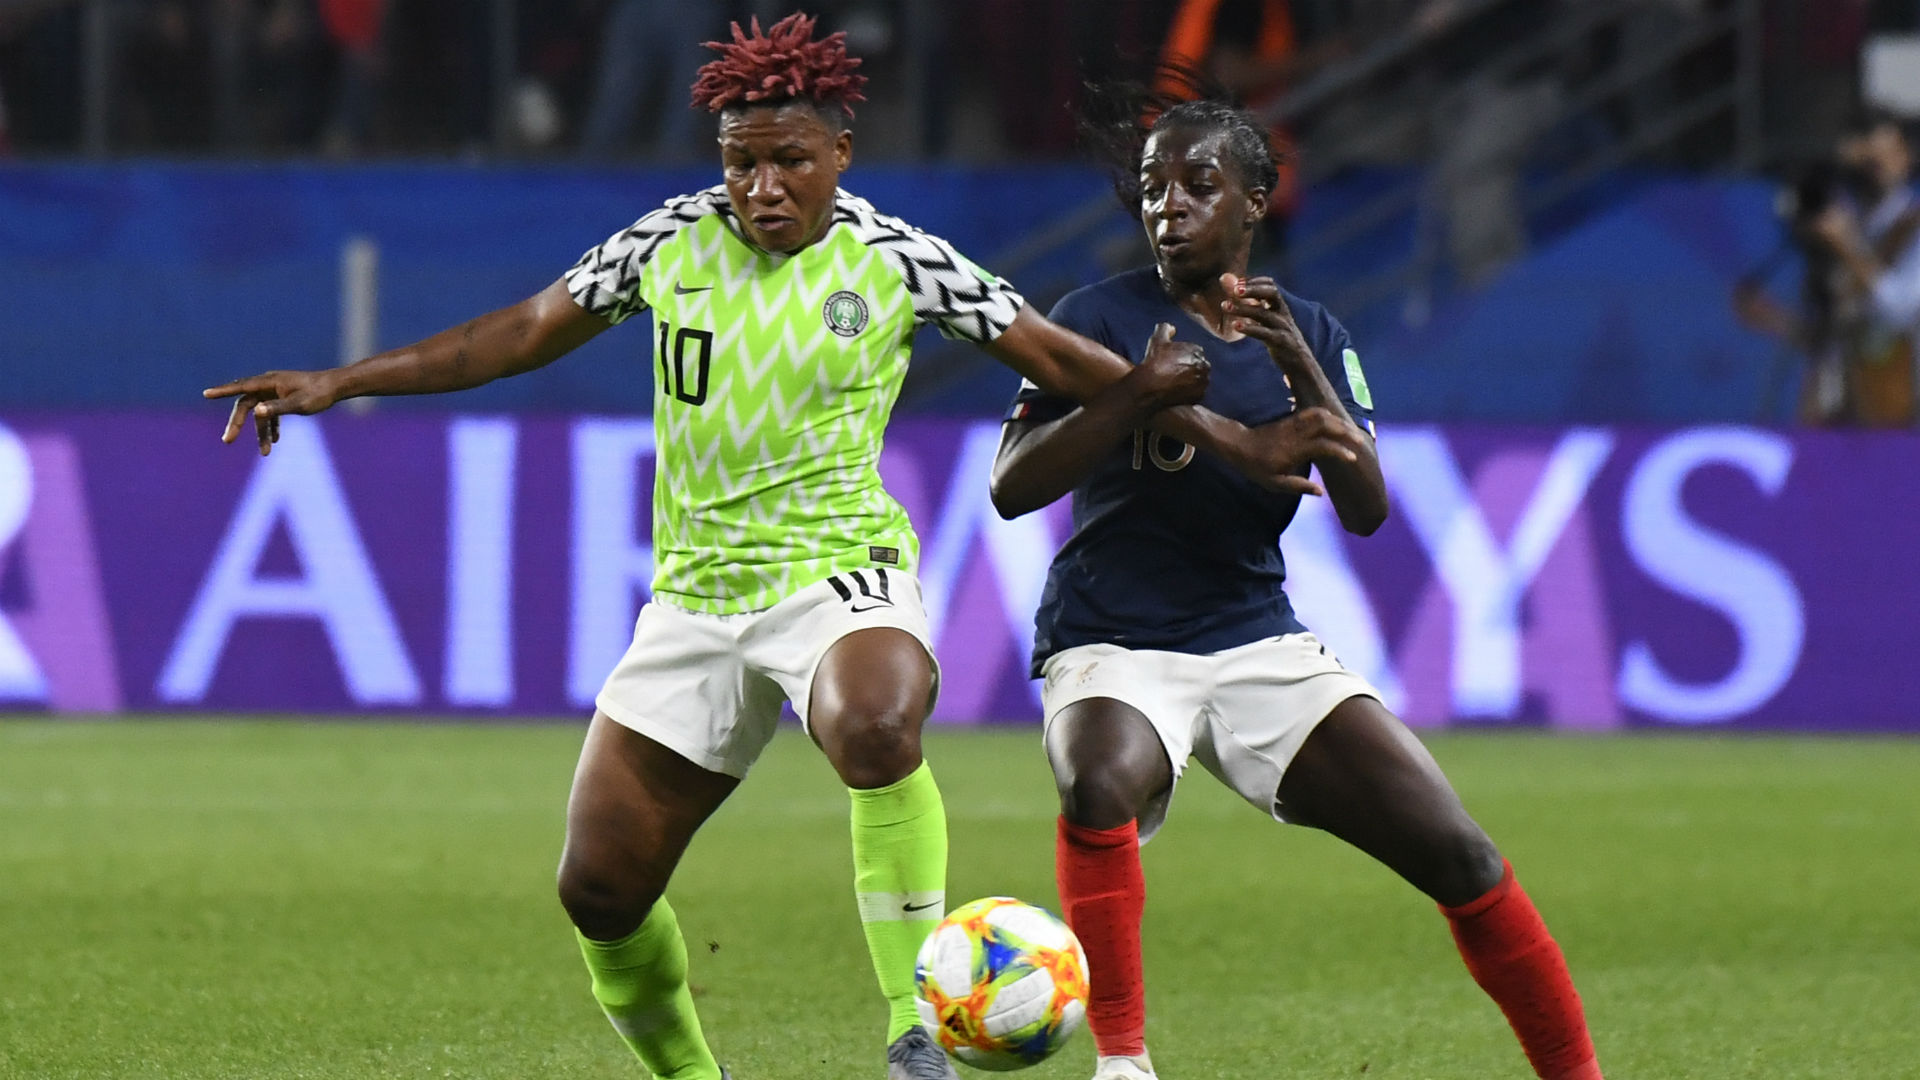 'Chikwelu is very complete technically and tactically' - Madrid coach Fernandez